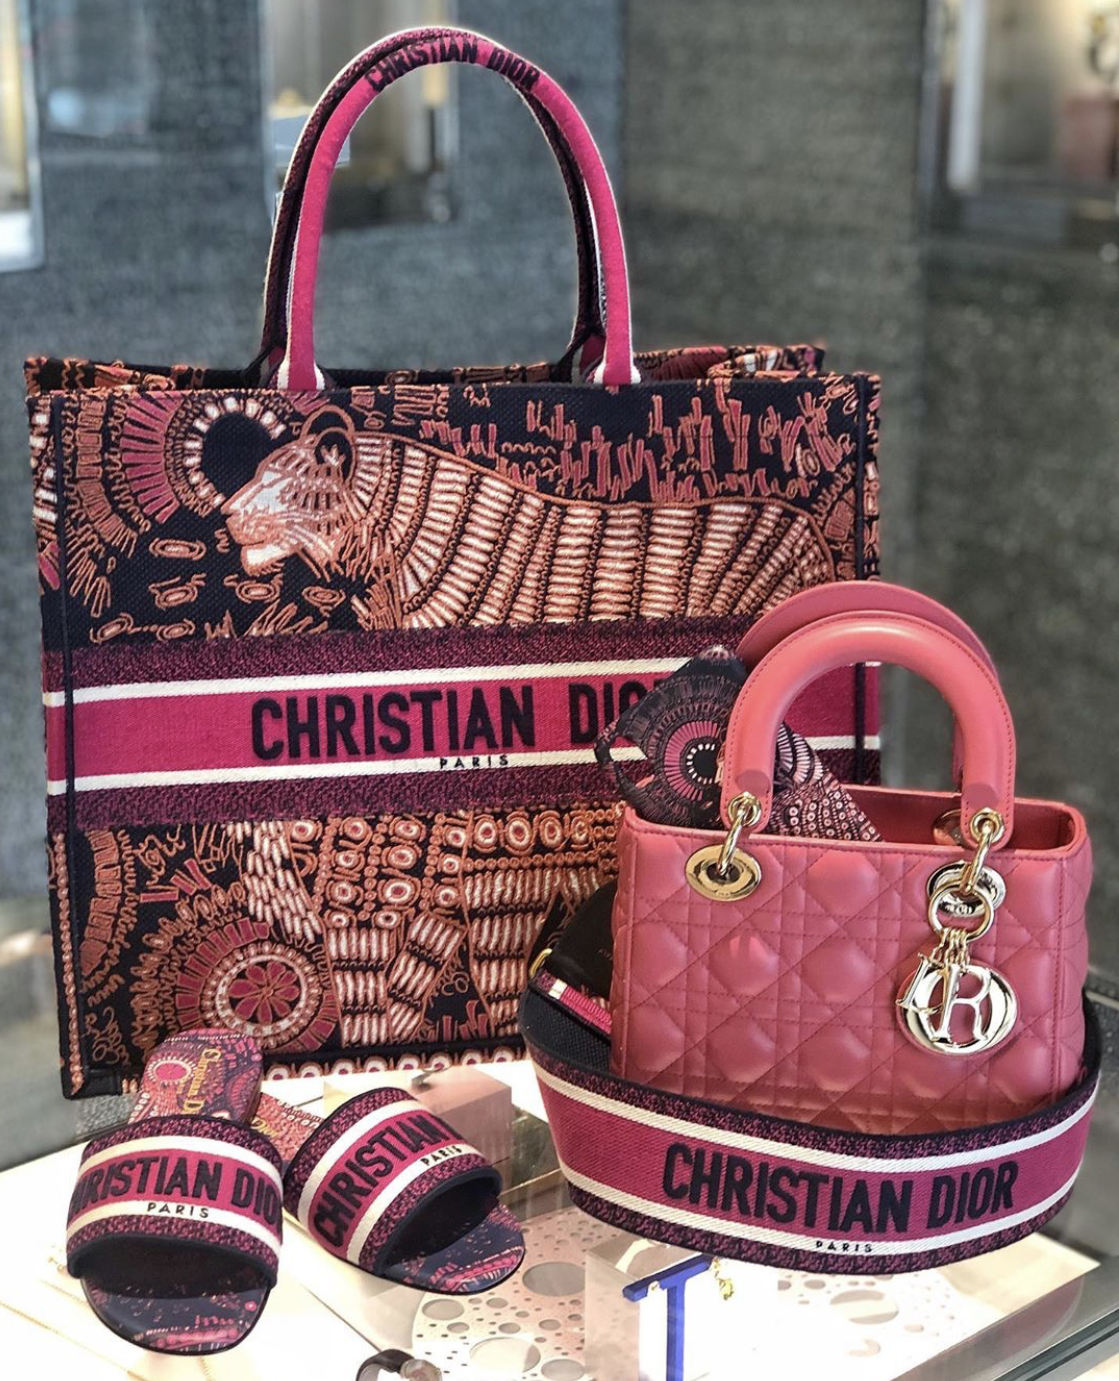 Bomb_Product_of_the_Day_Dior_Book_Tote_Bag_3